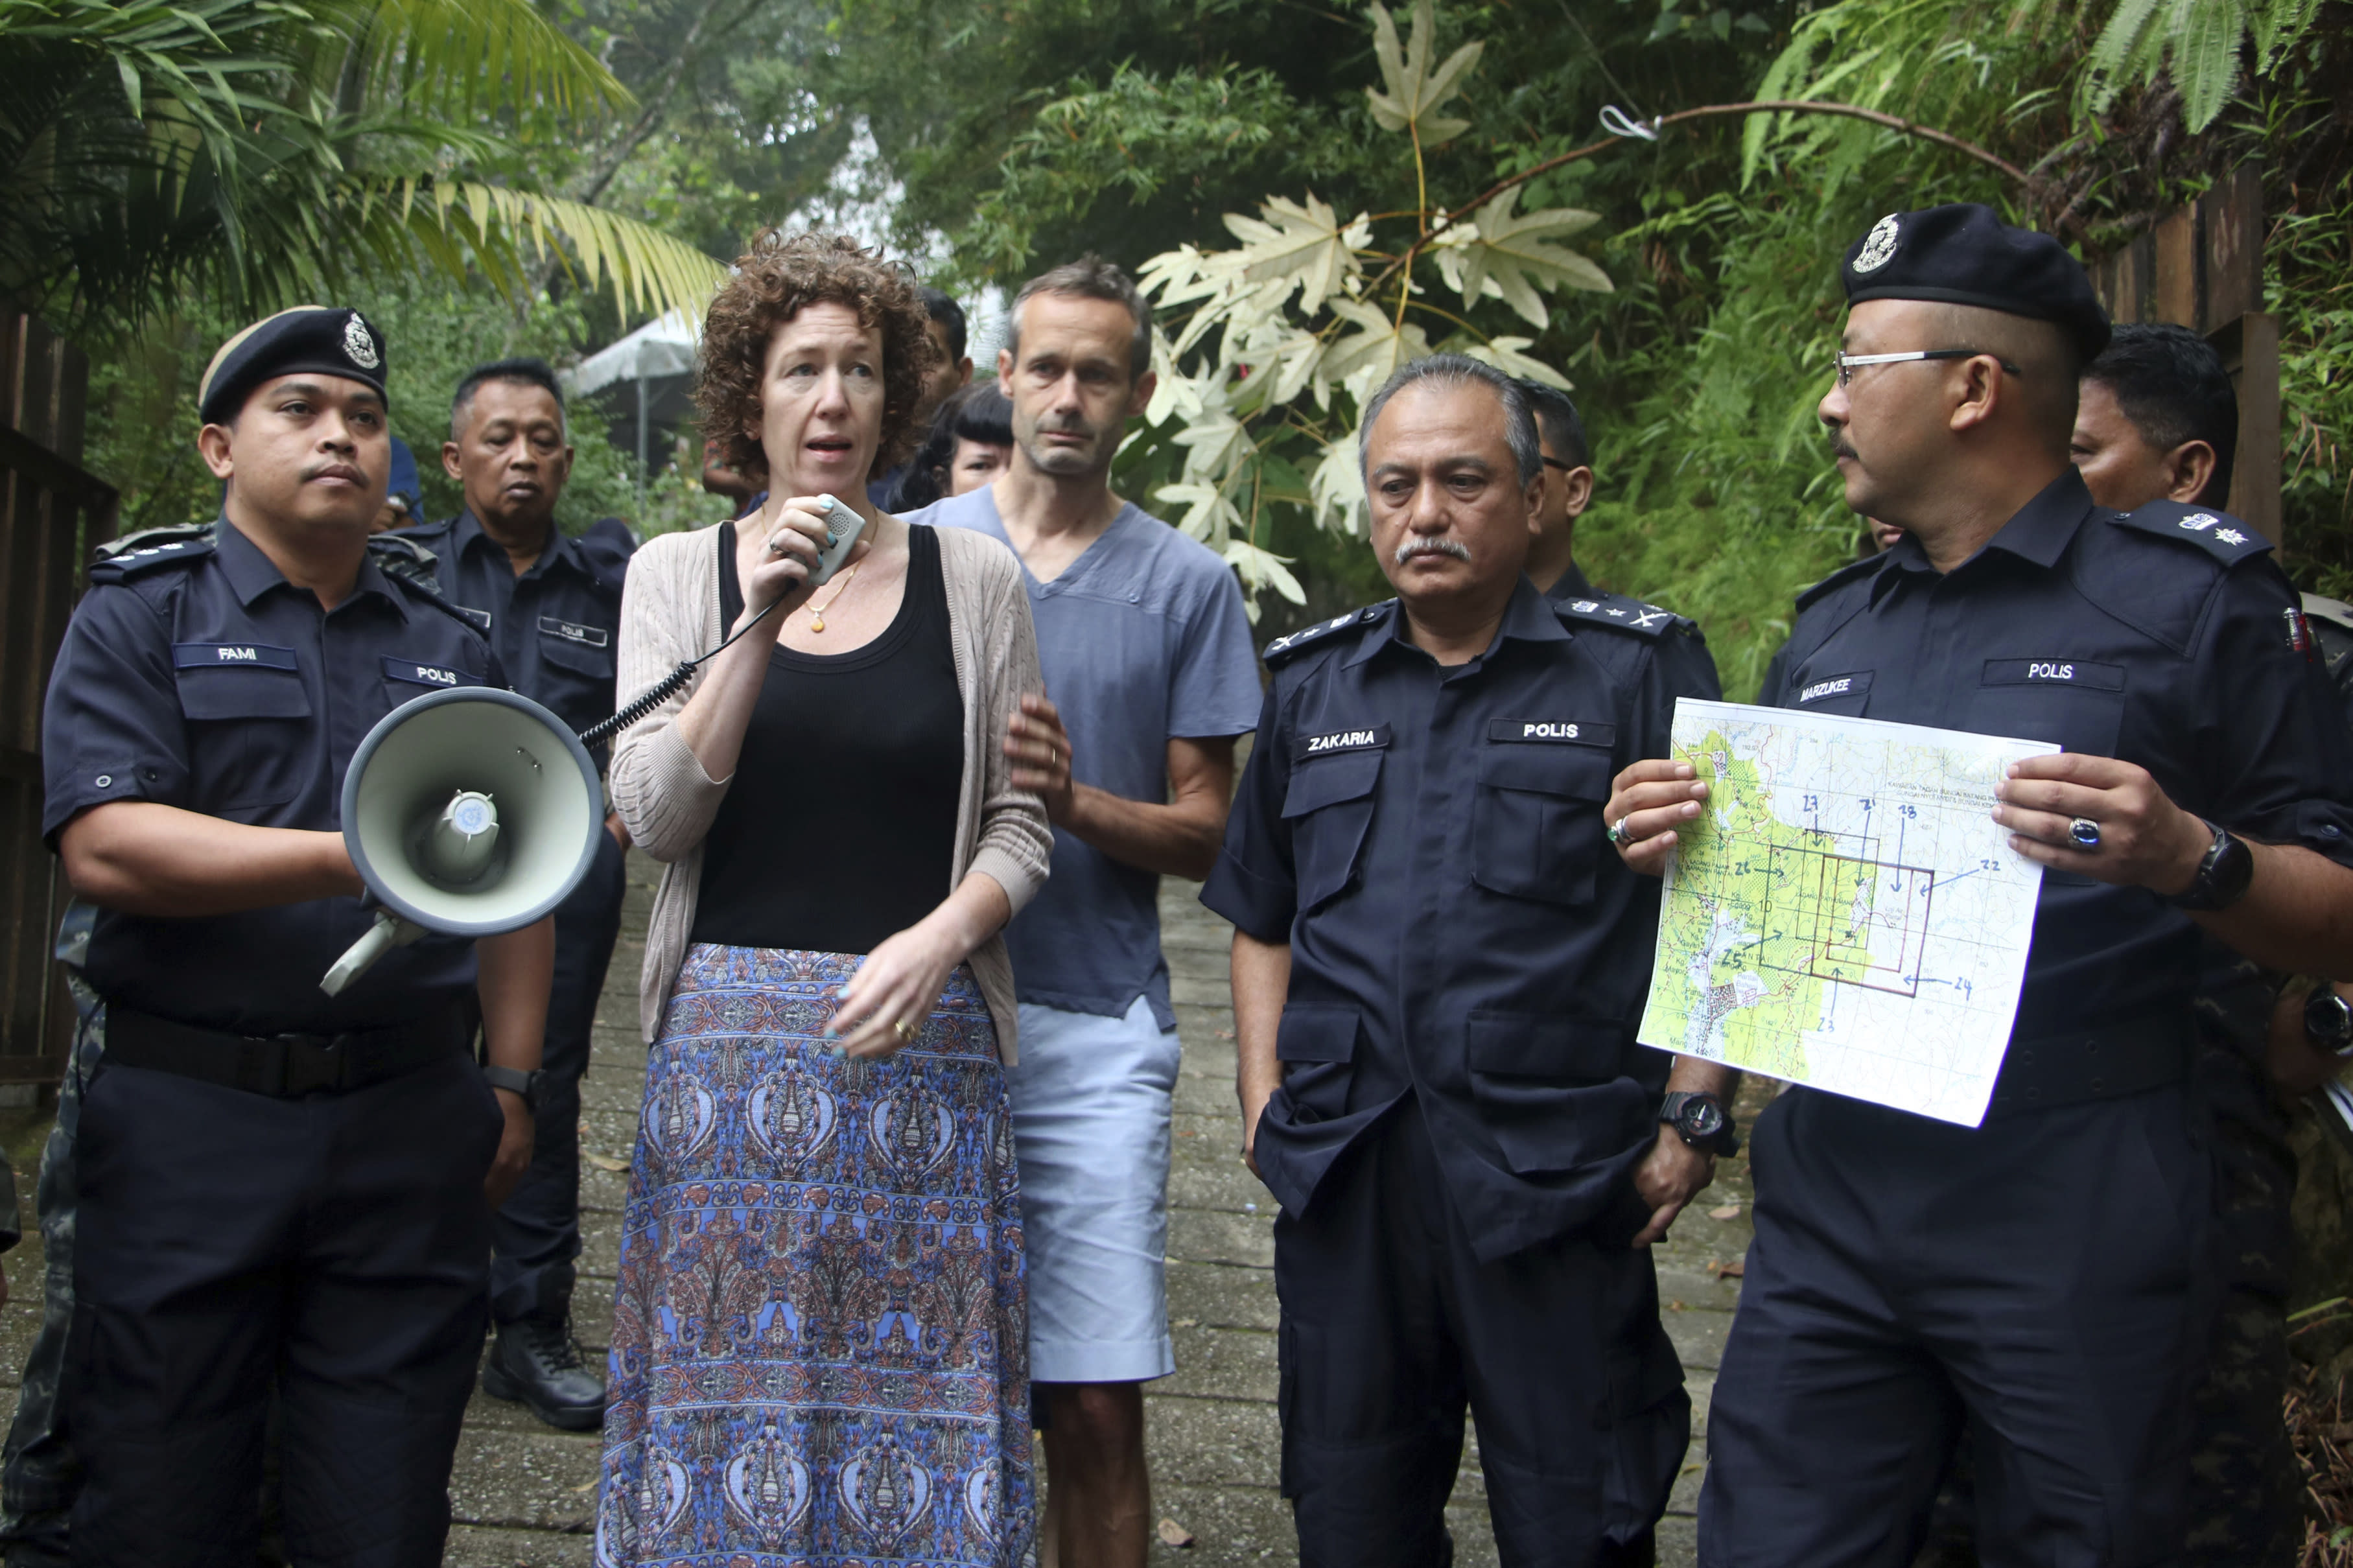 London teen missing in Malaysia isn't independent: parents